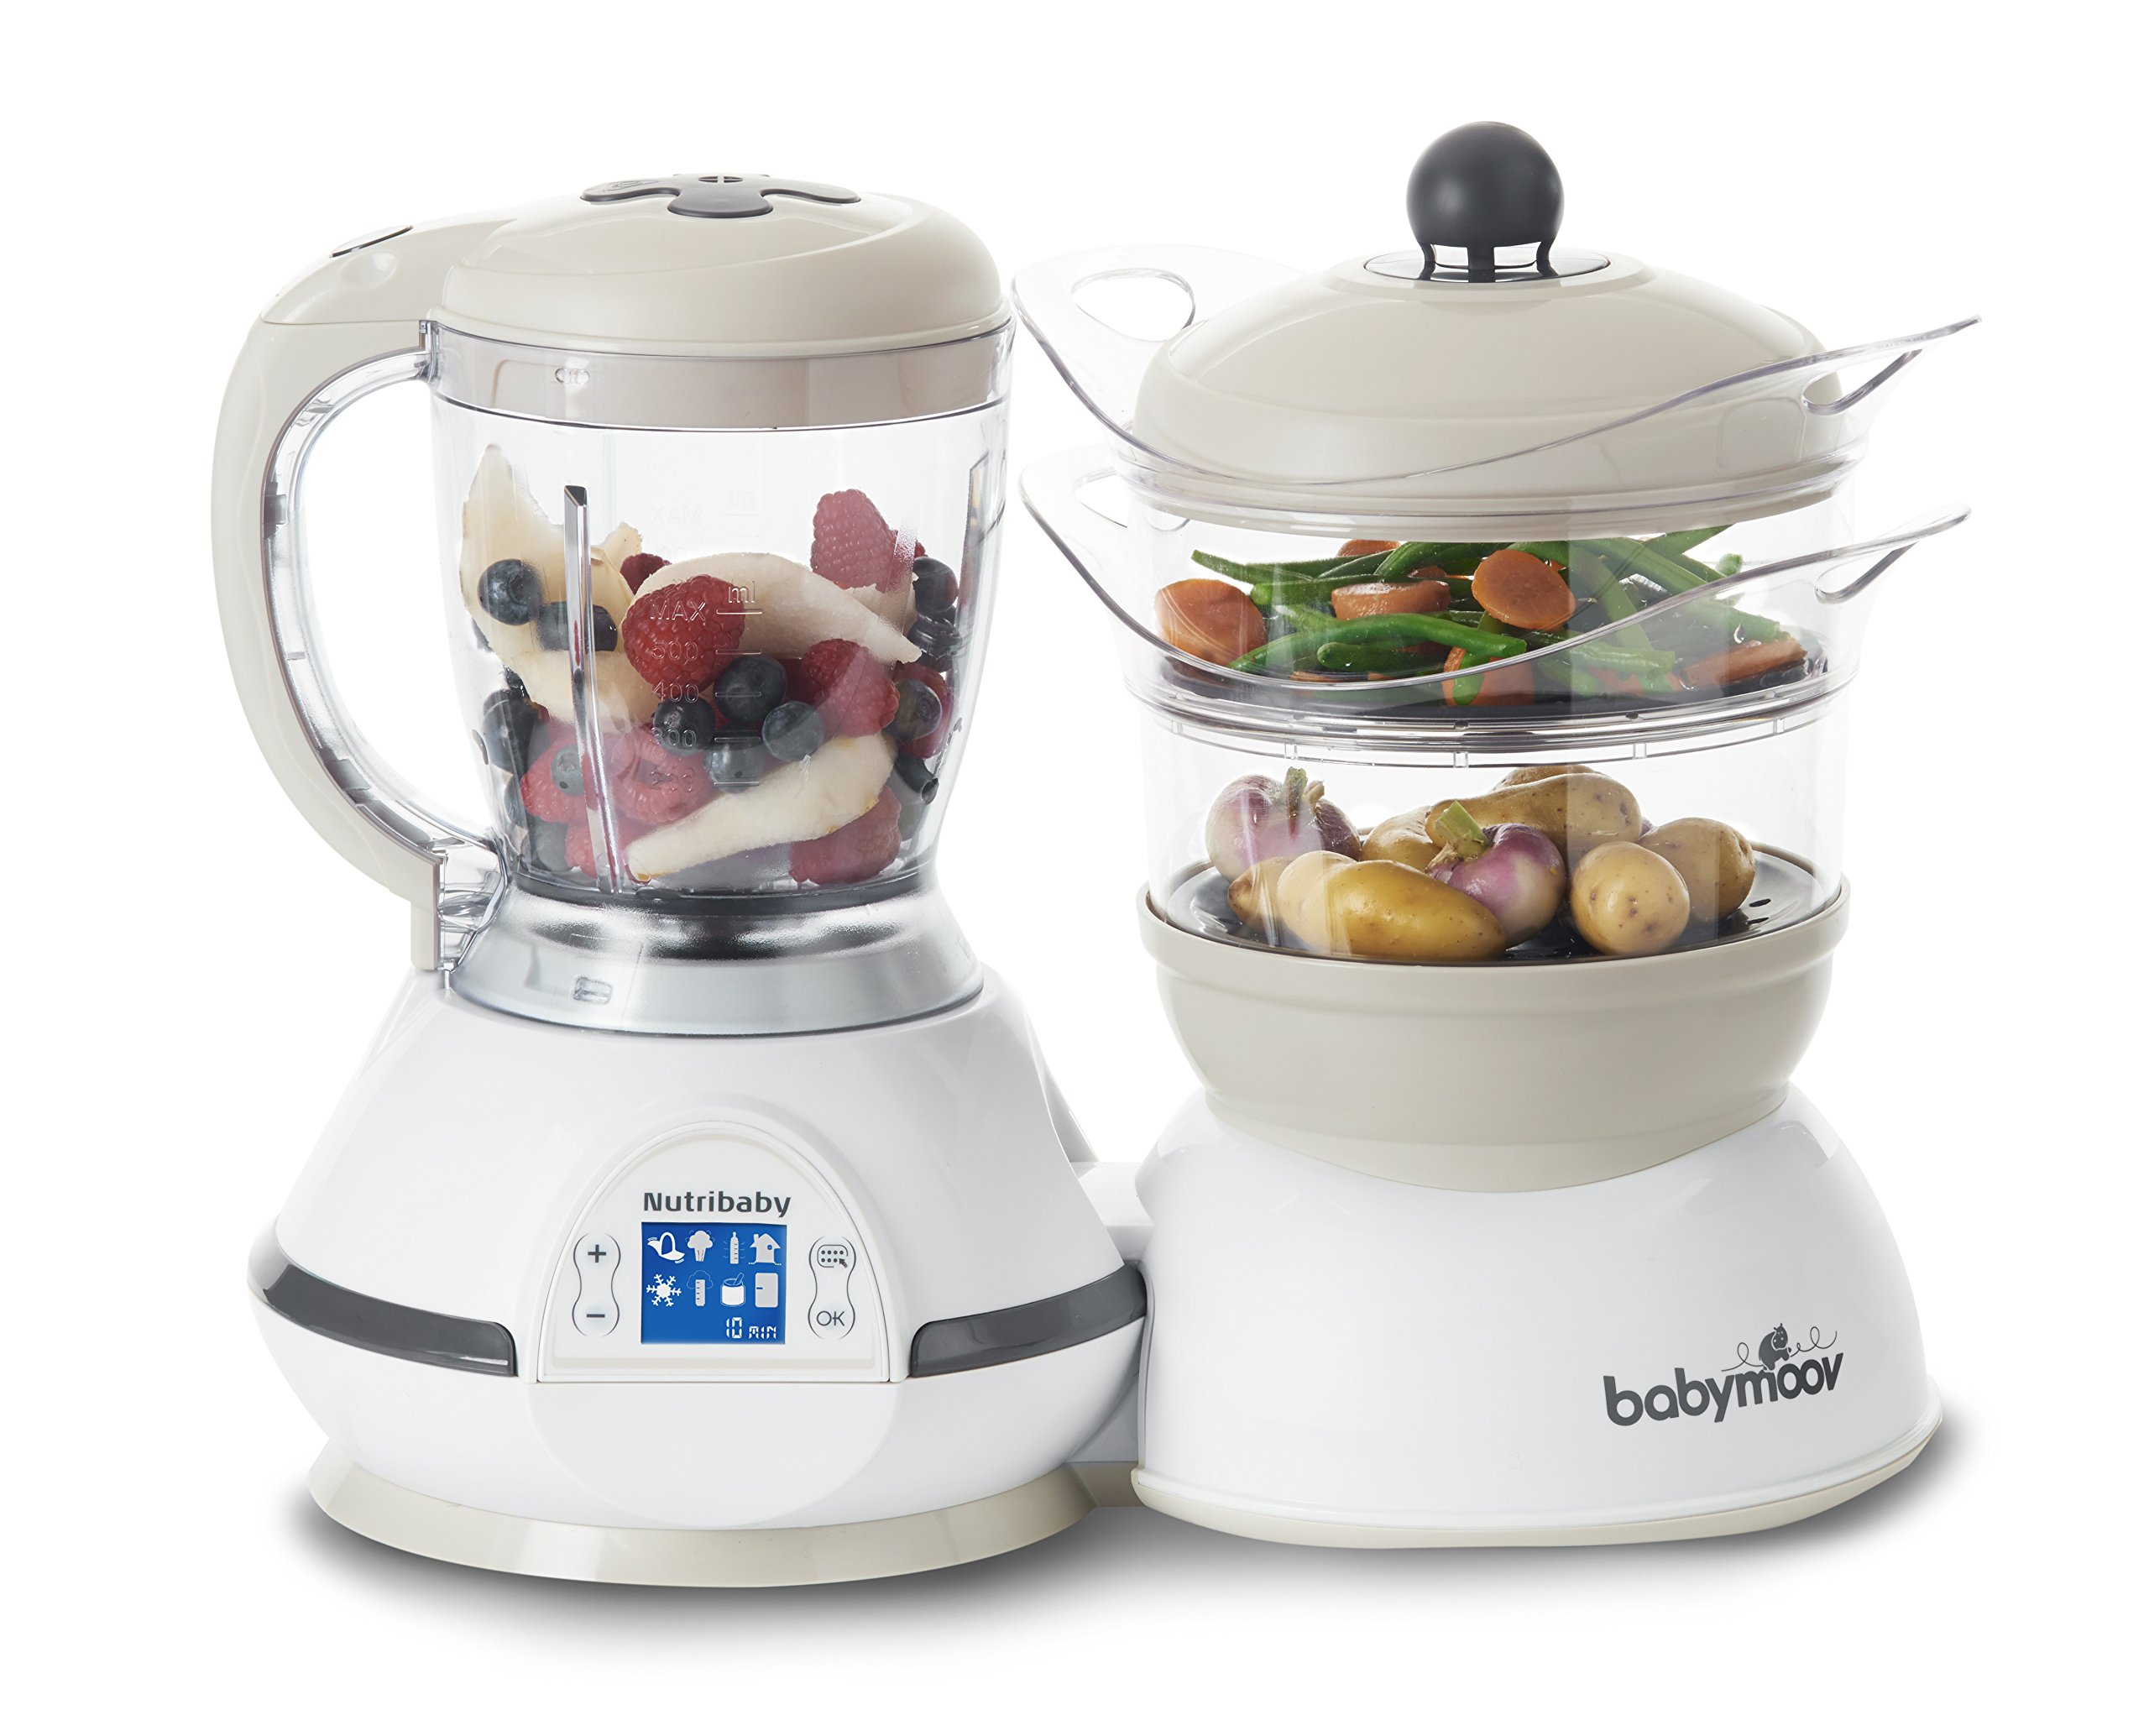 Babymoov Nutribaby - 5 in 1 Baby Food Maker with Steam Cooker, Blend & Puree, Warmer, Defroster, Sterilizer (Cream)